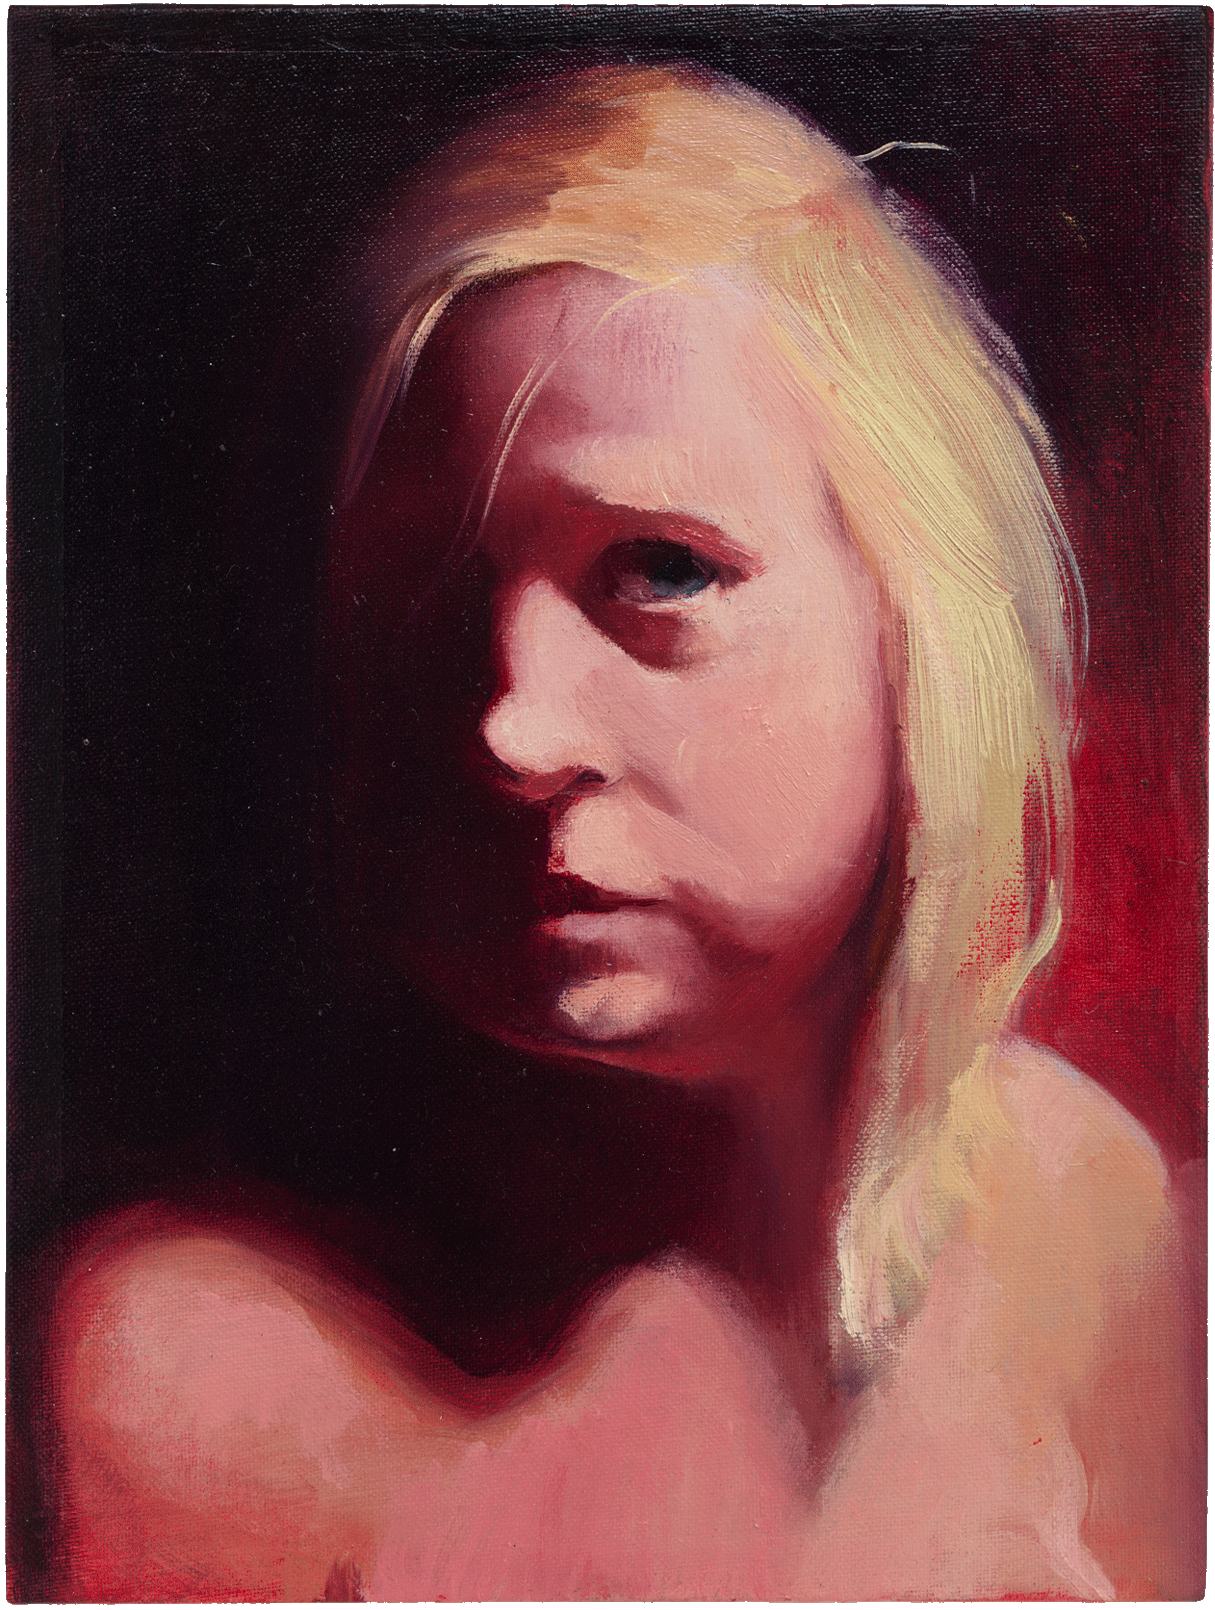 Lisa Yuskavage, KK, 1998, oil on canvas board, 9 1/2 x 7 inches (courtesy of David Zwirner Gallery)